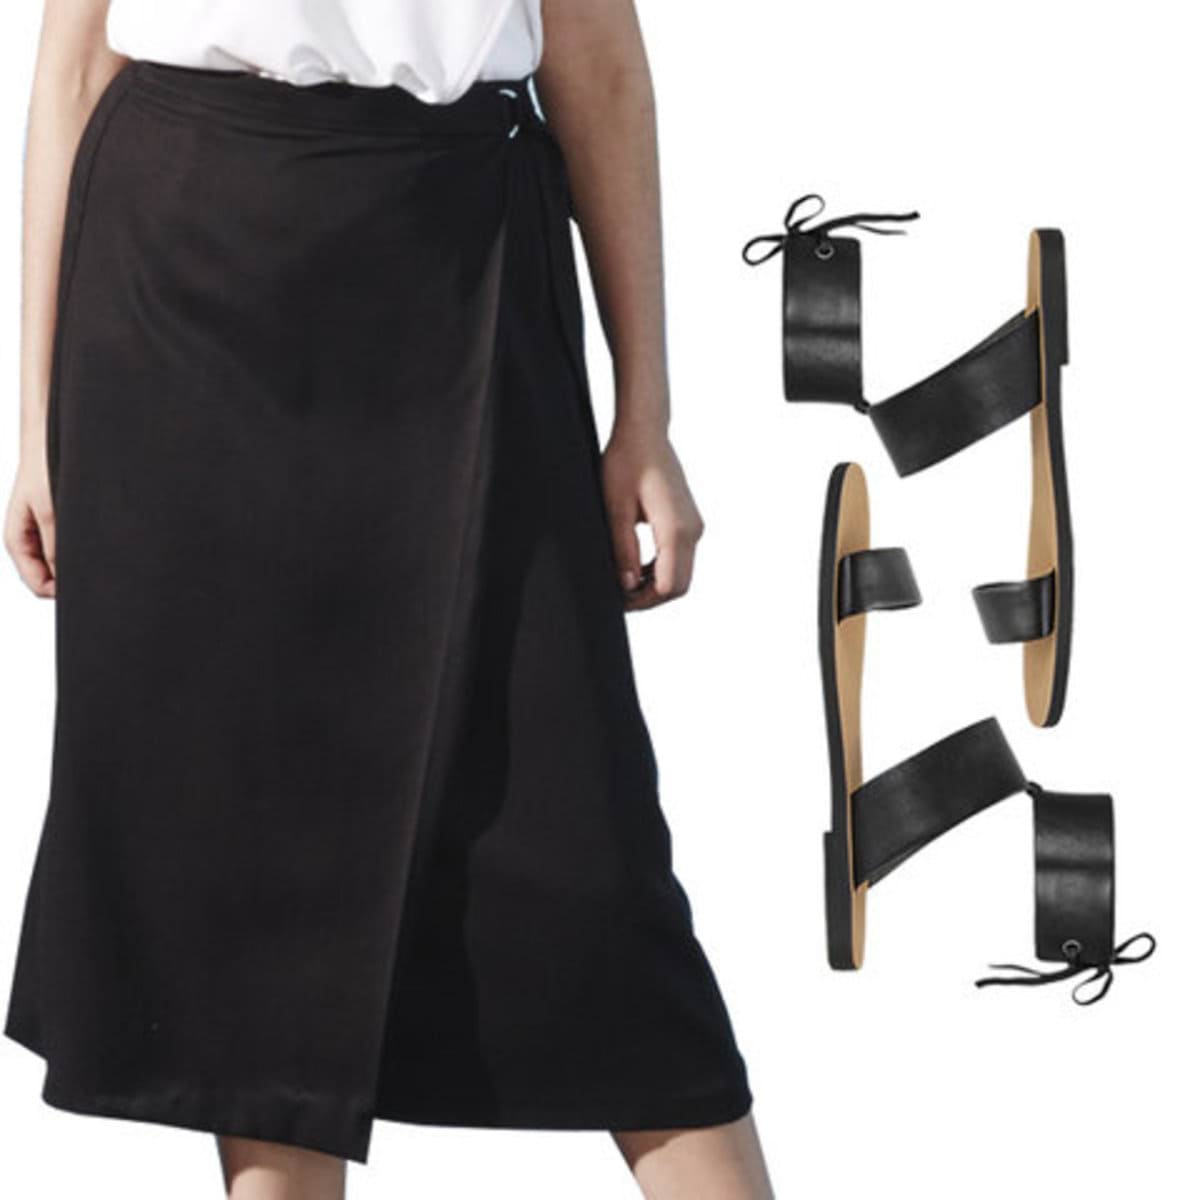 072516-plus-size-skirt-sandal-7 (1)